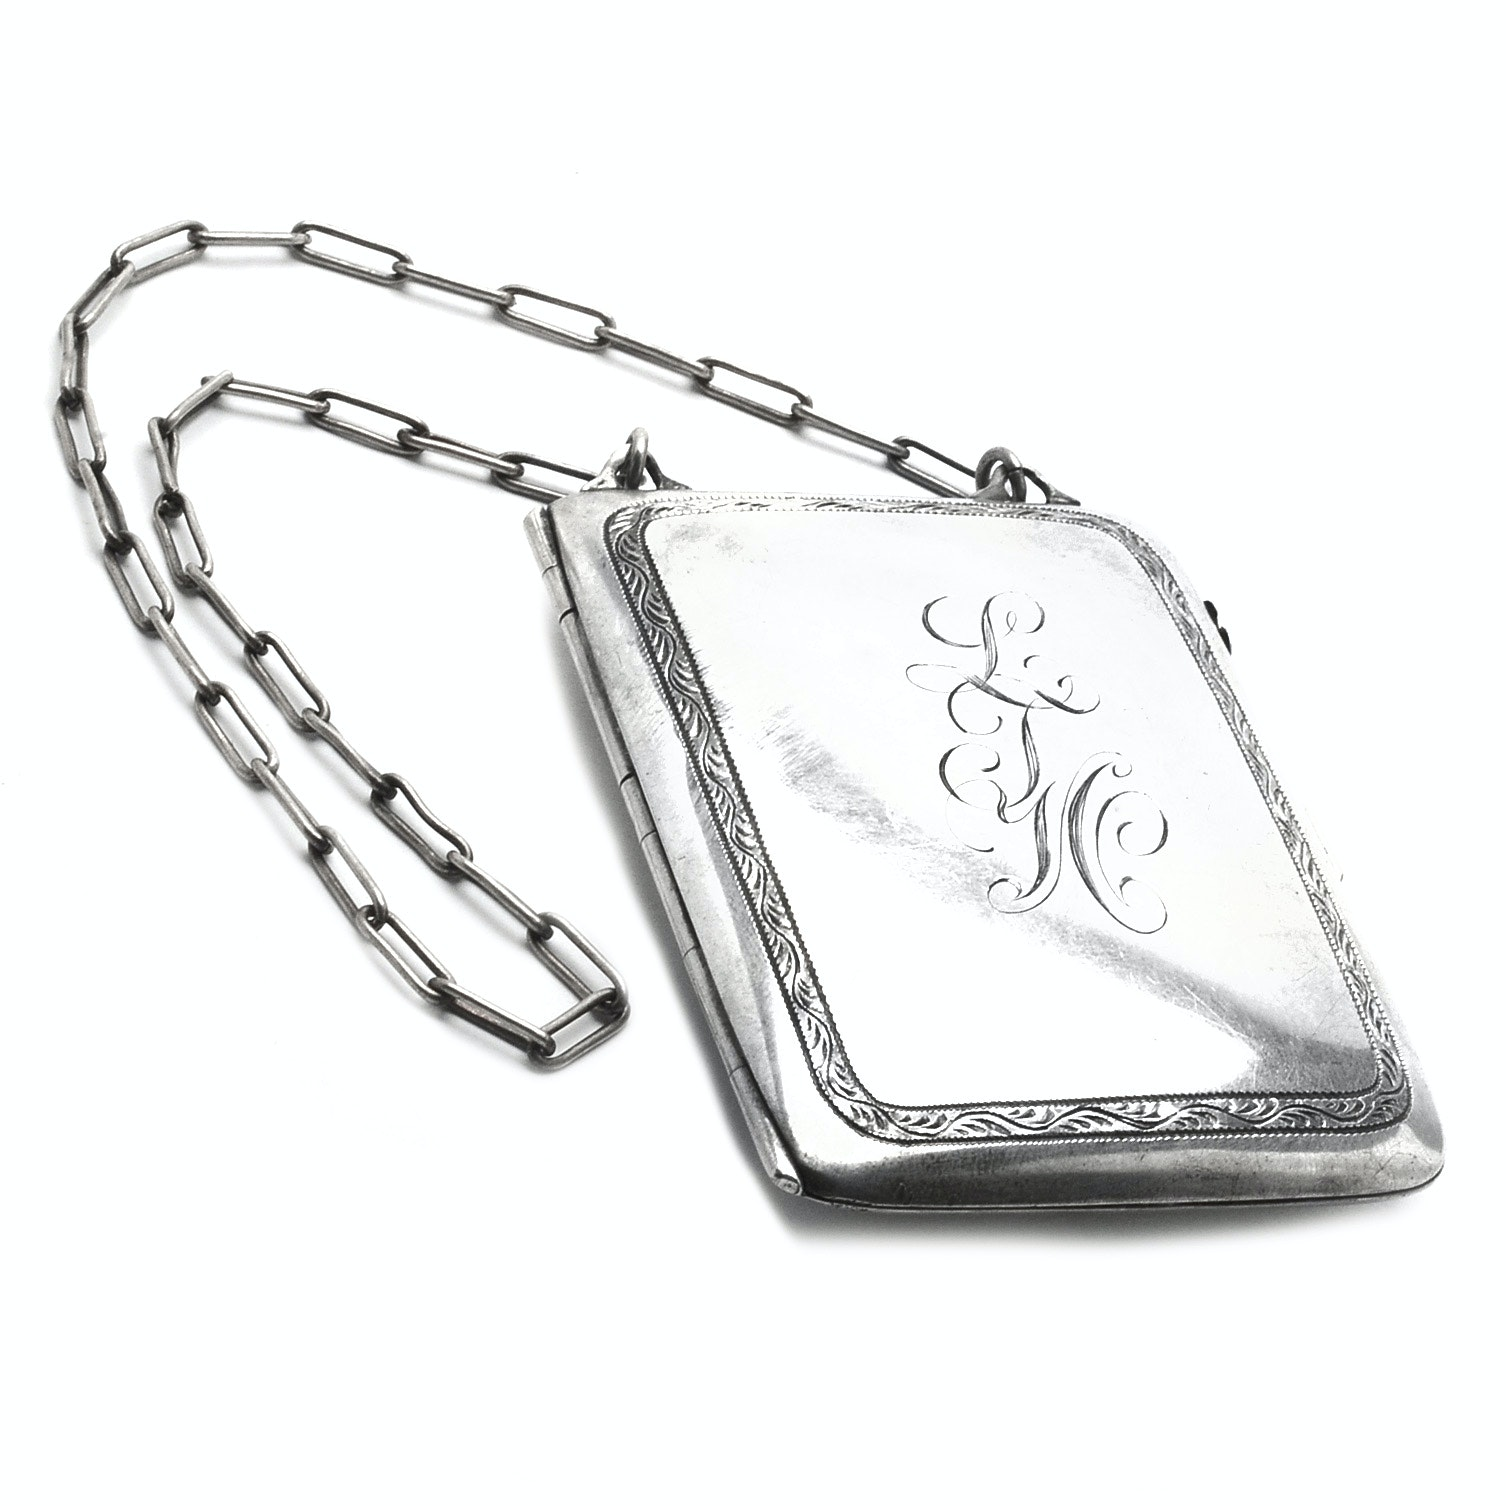 Vintage Sterling Silver Compact Coin Purse